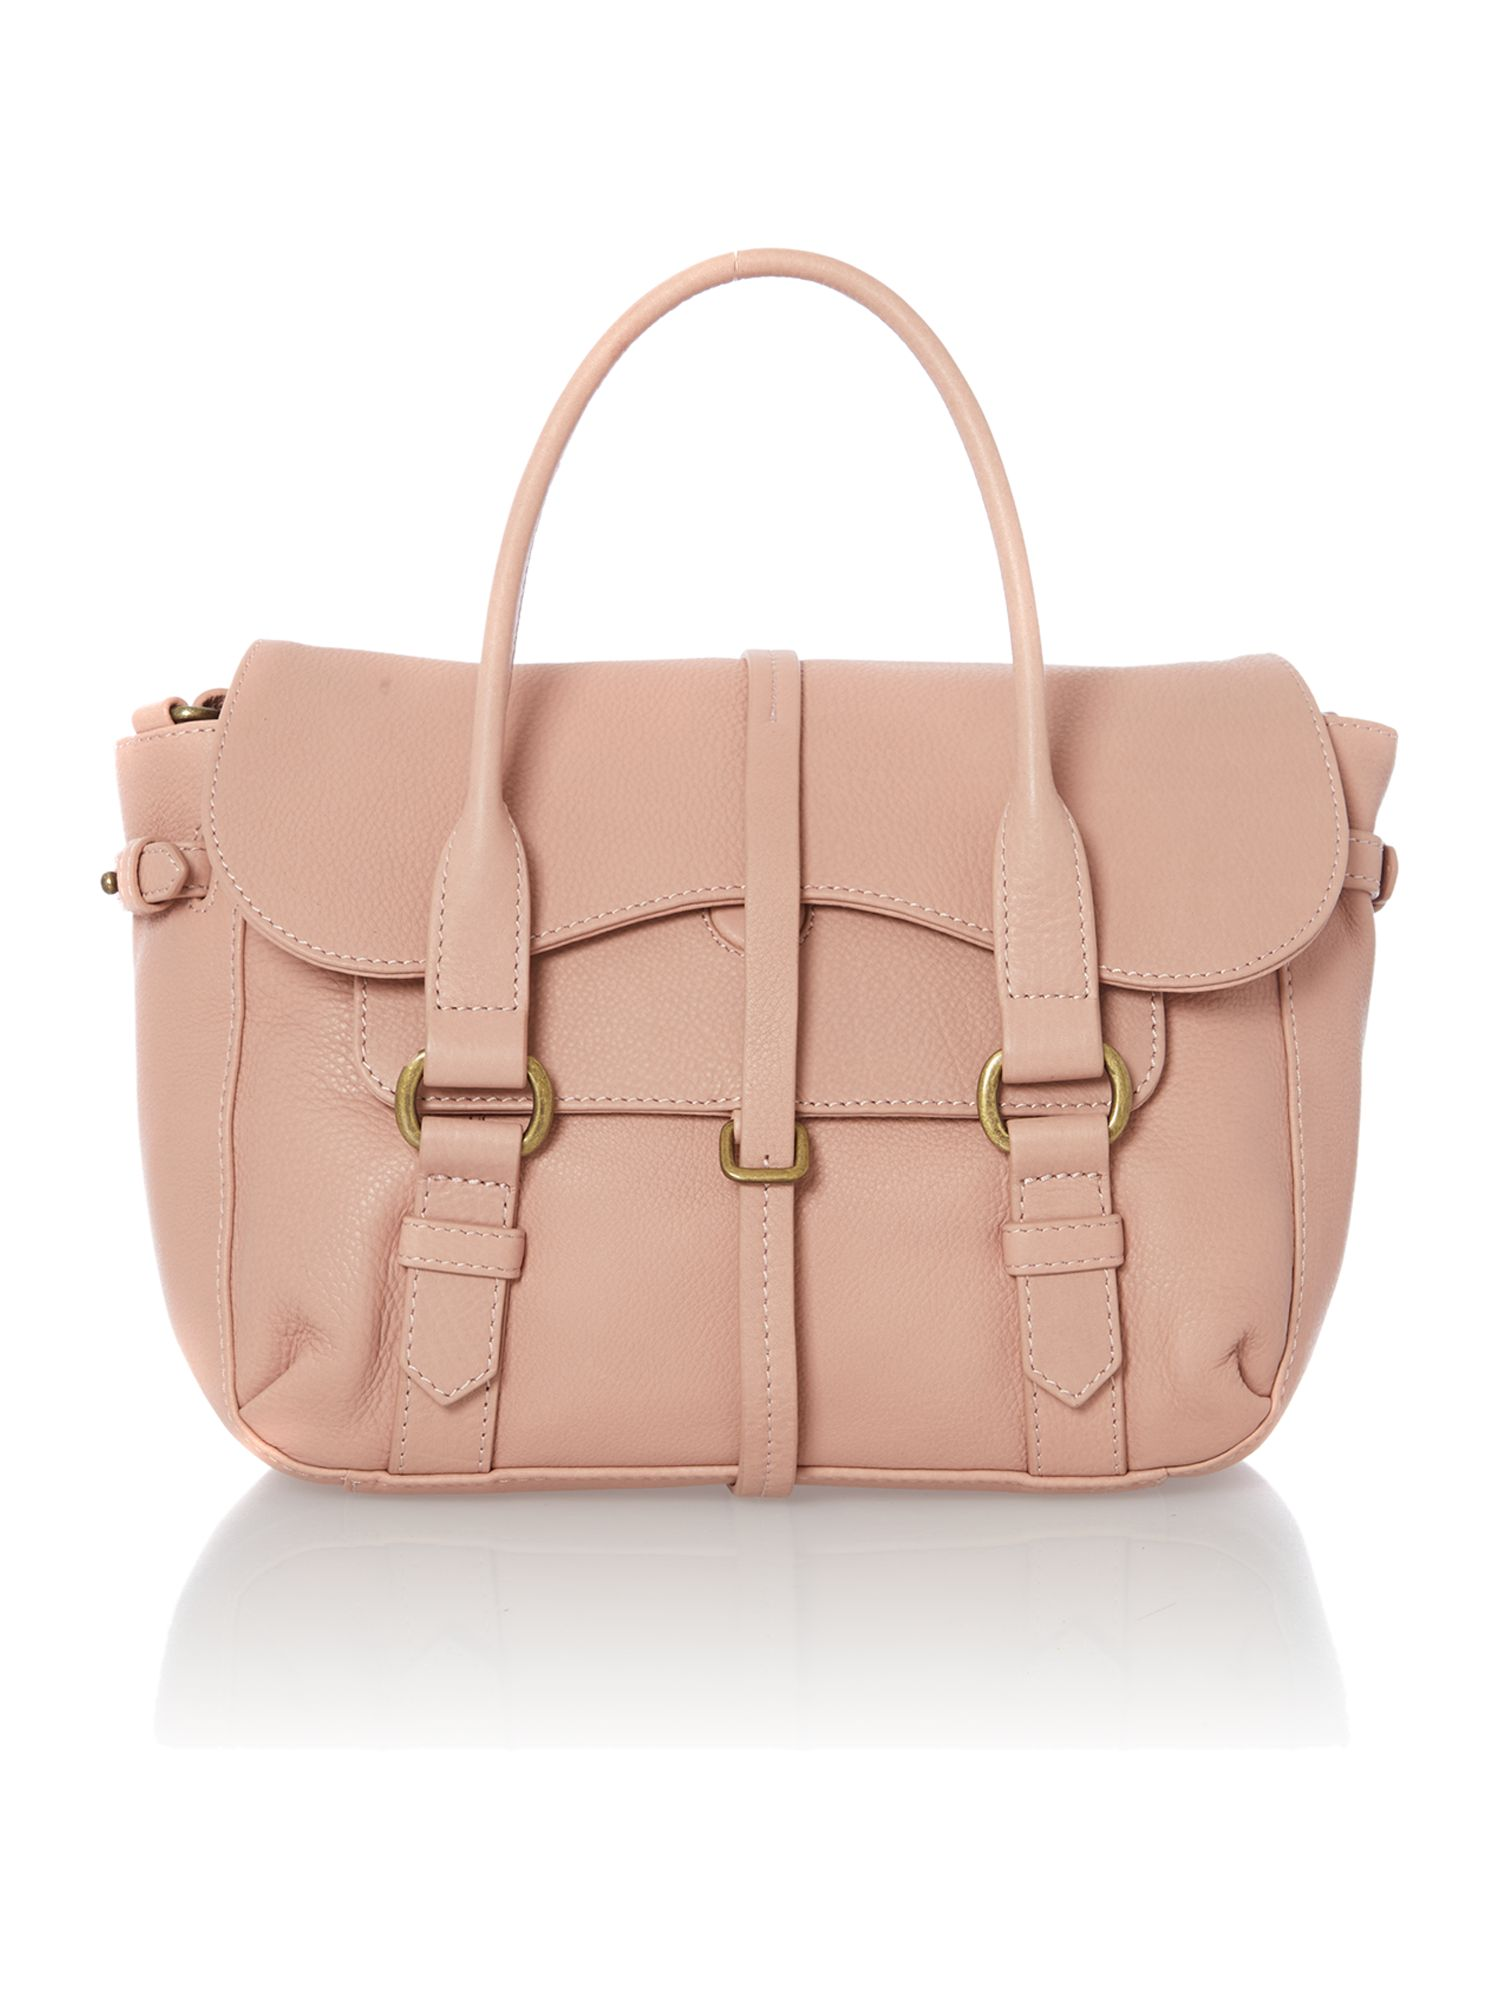 Grosnevor pale pink medium flapover satchel bag